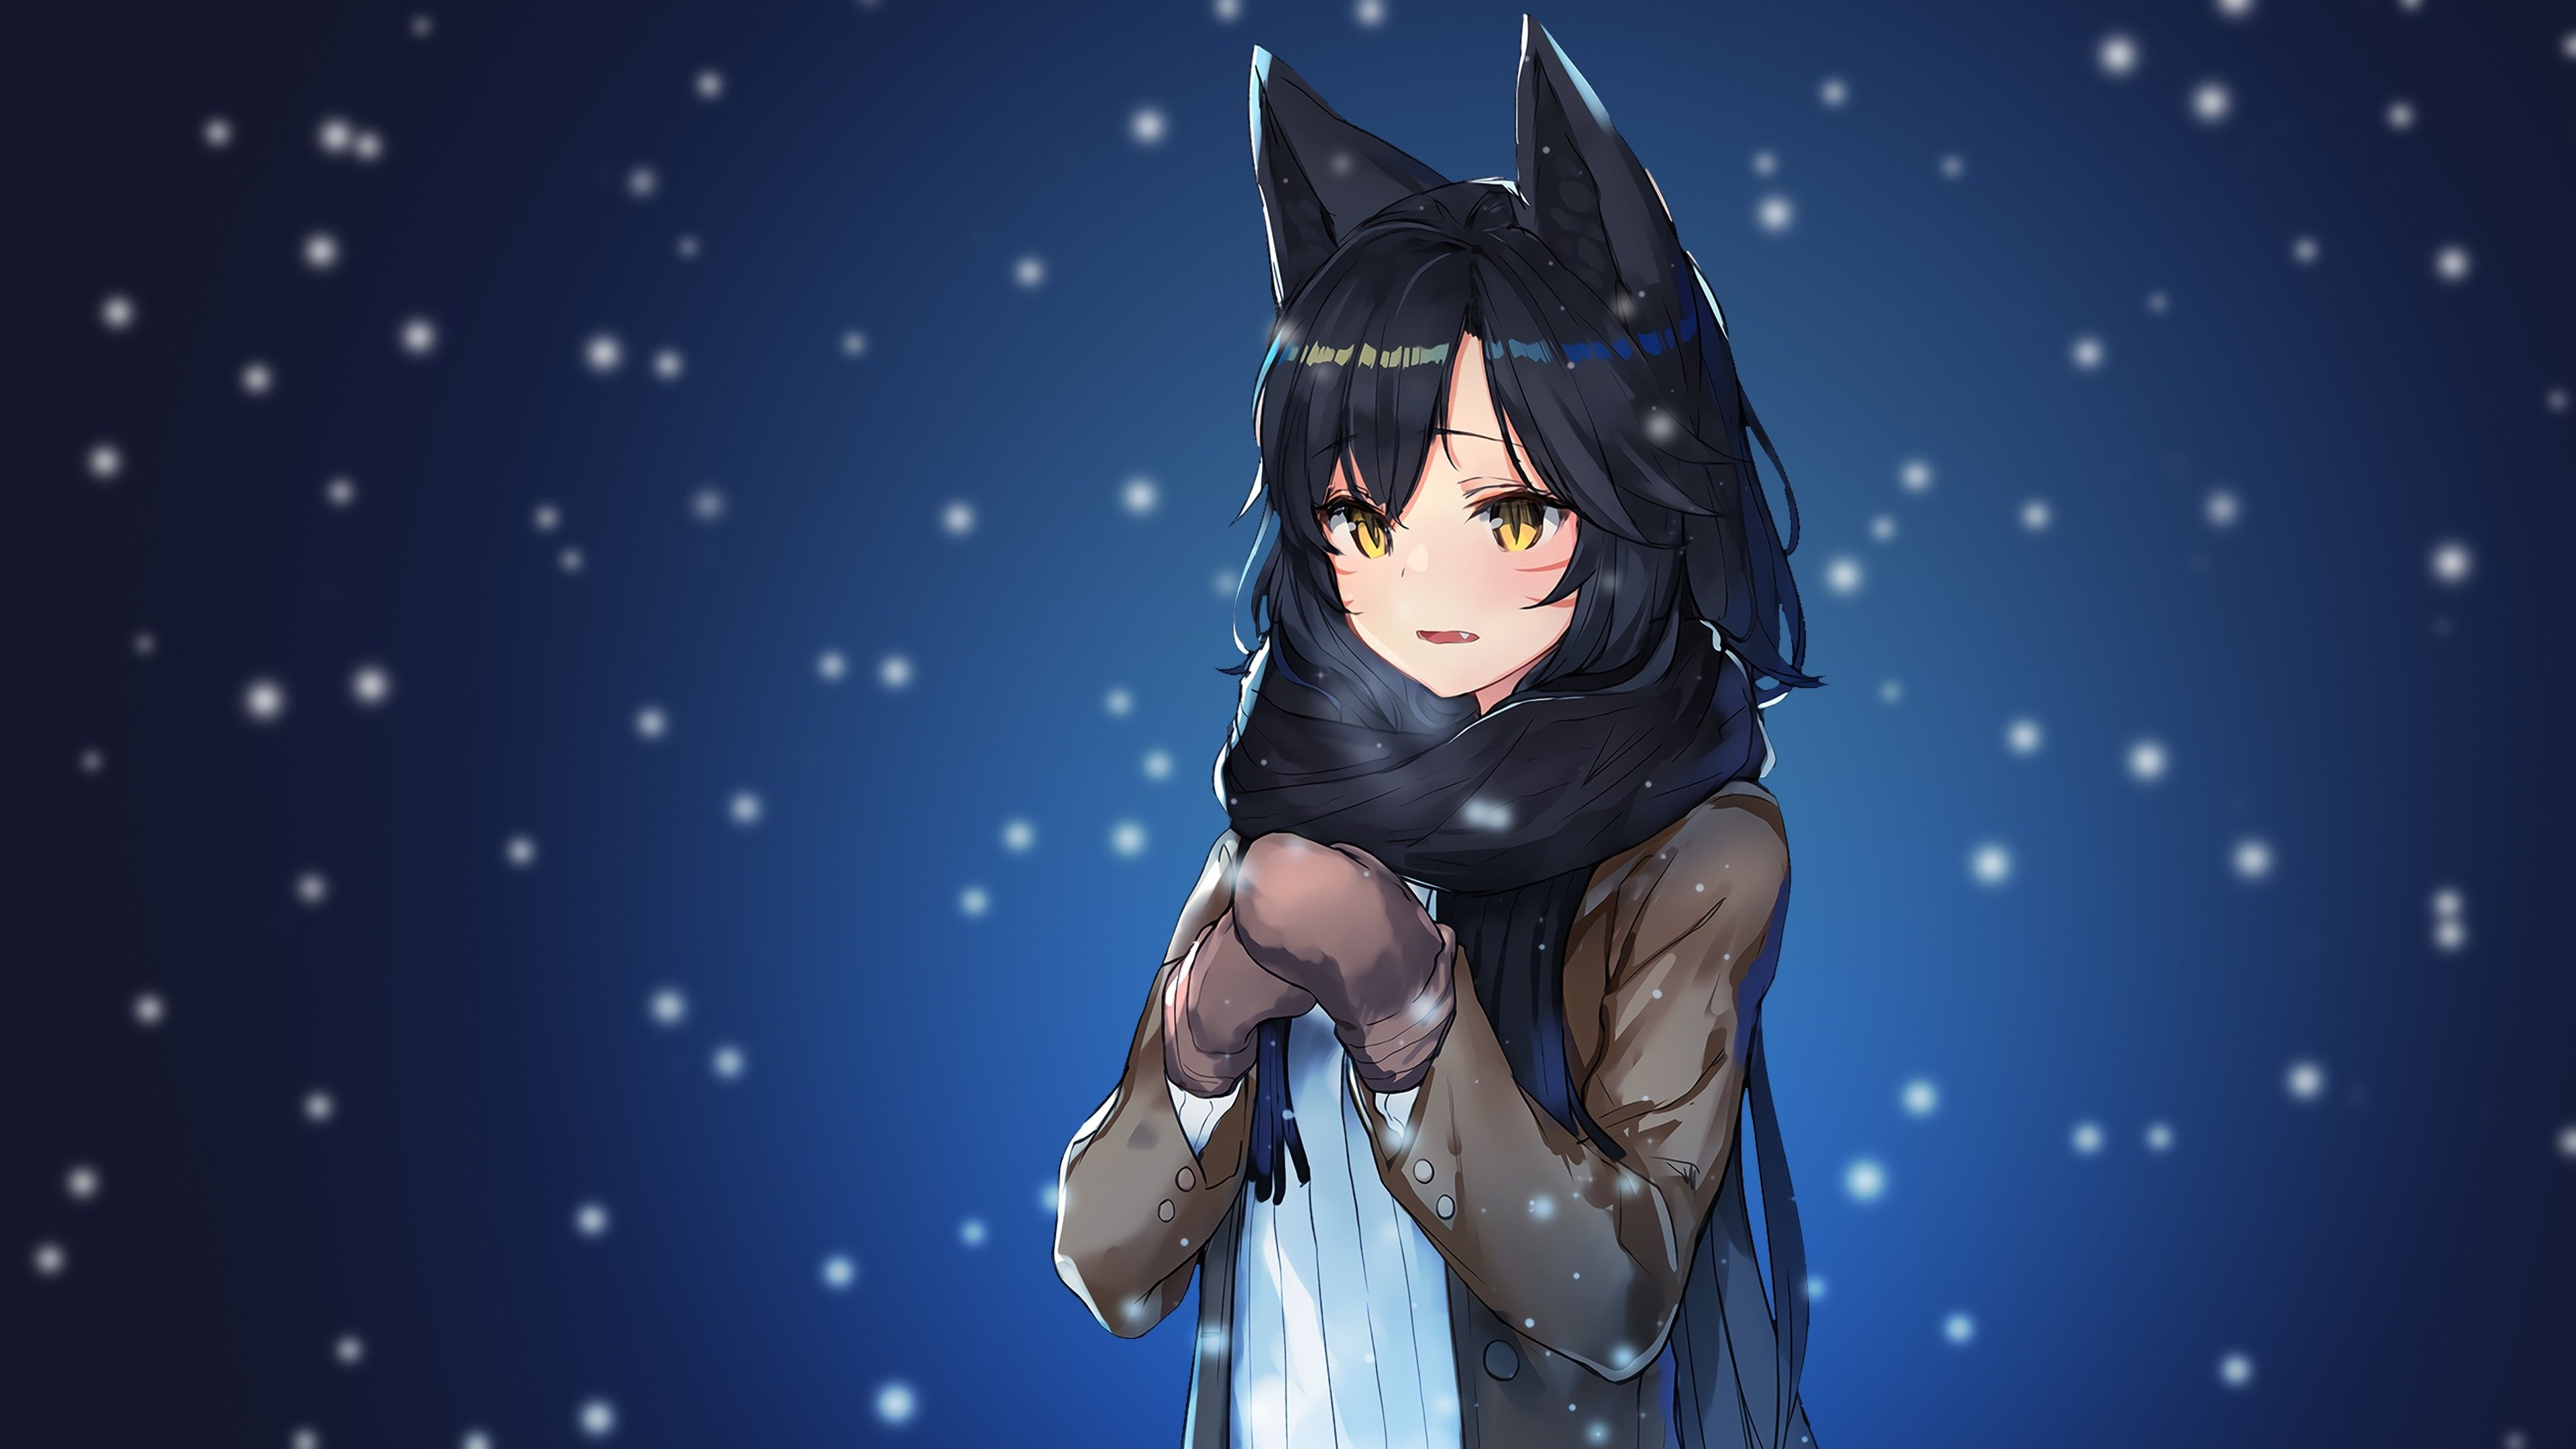 3840x2160 Wallpaper League Of Legends, Ahri, Snow, Scarf, Anime Style ...